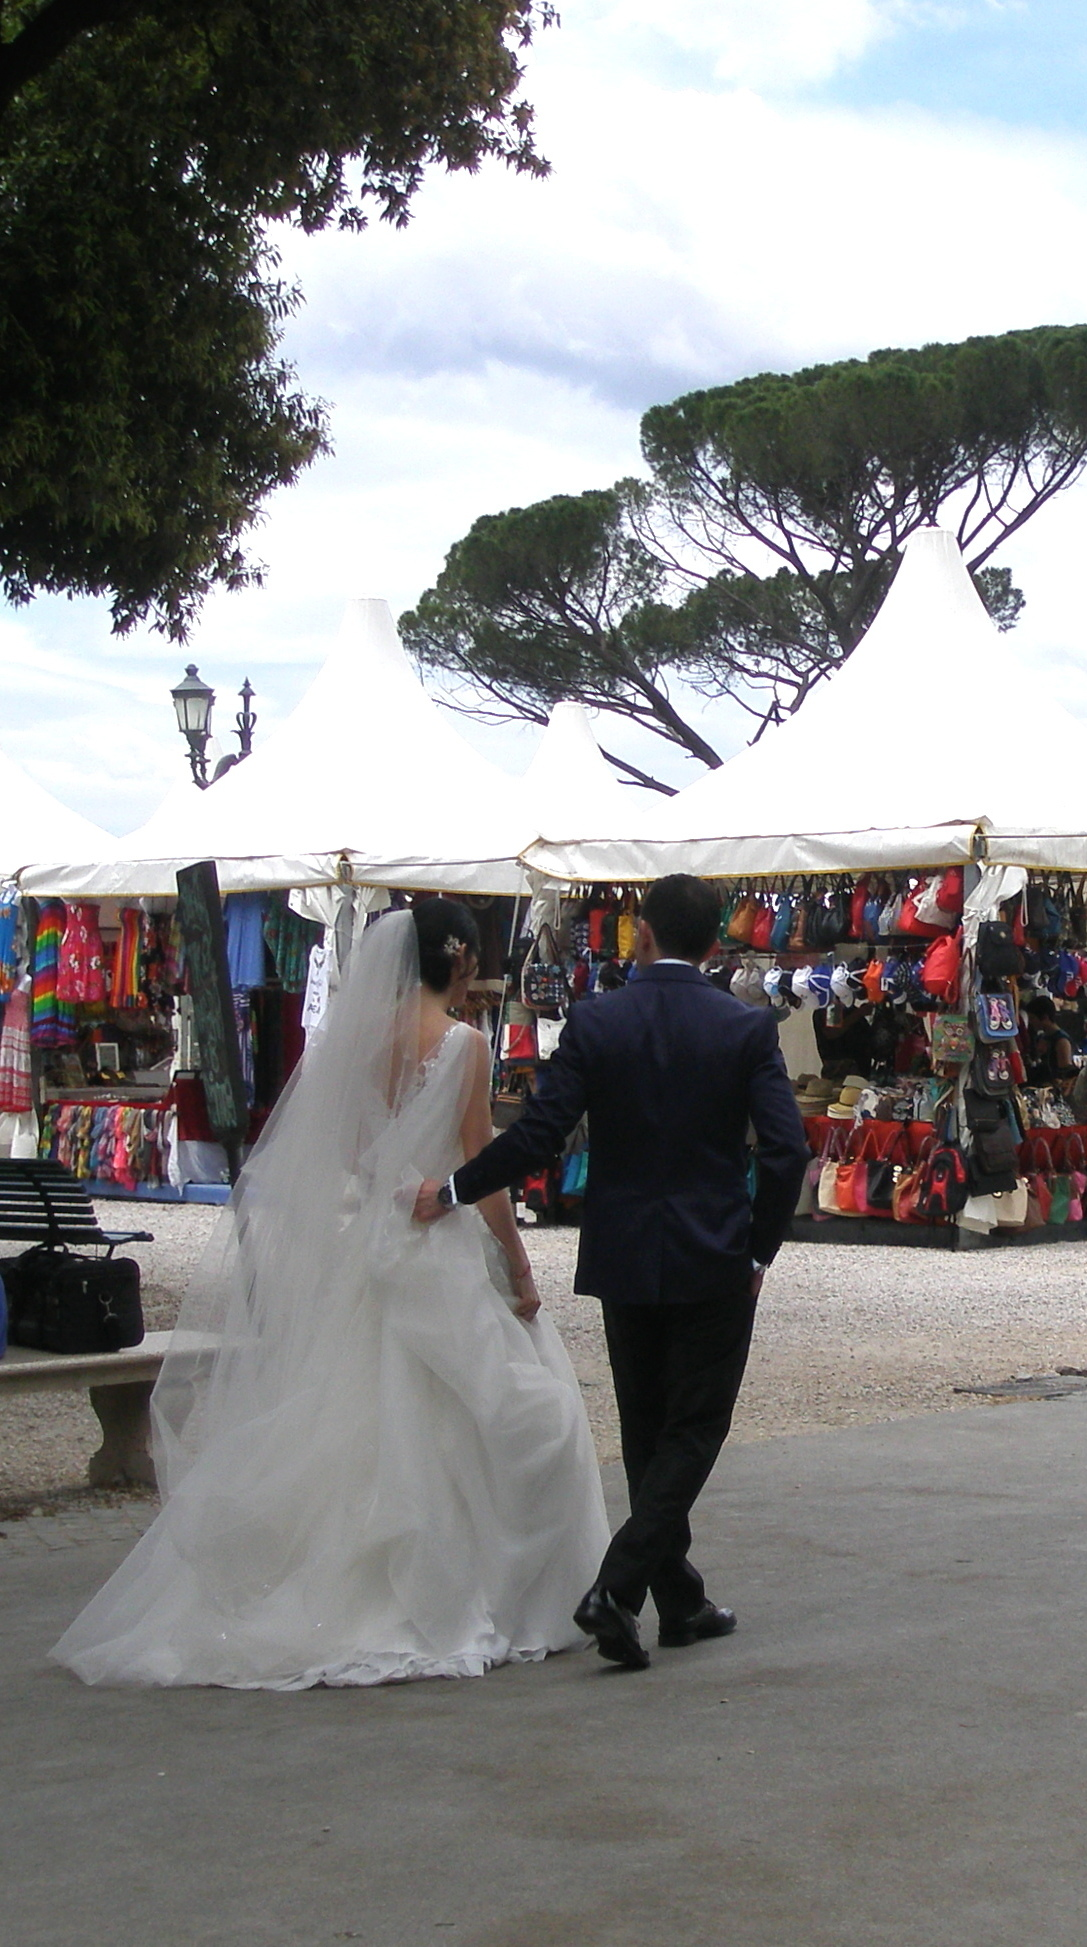 A bride and her groom promenade on Piazzale Napoleone